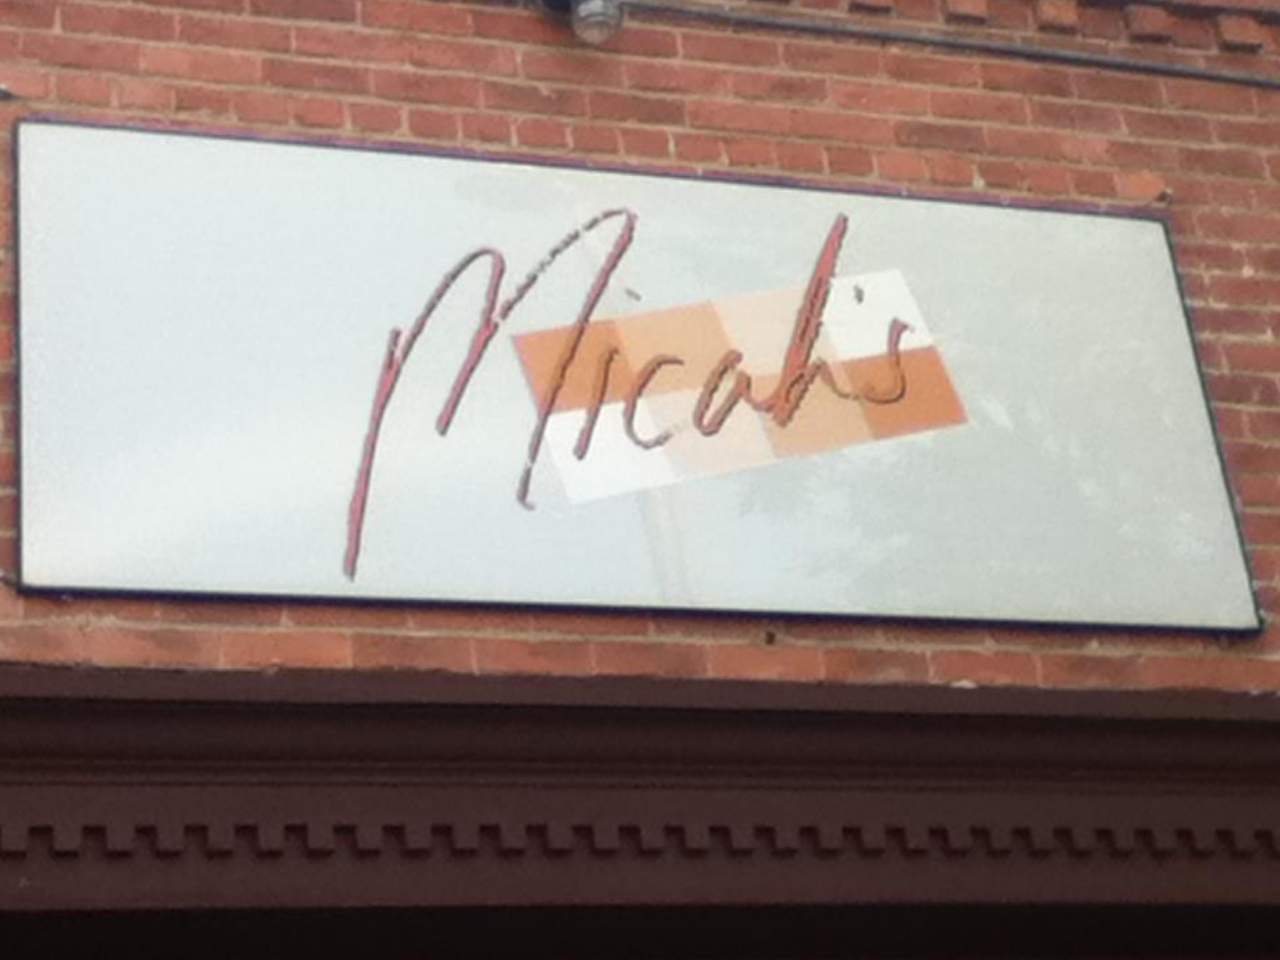 Micah's Salon & Boutique